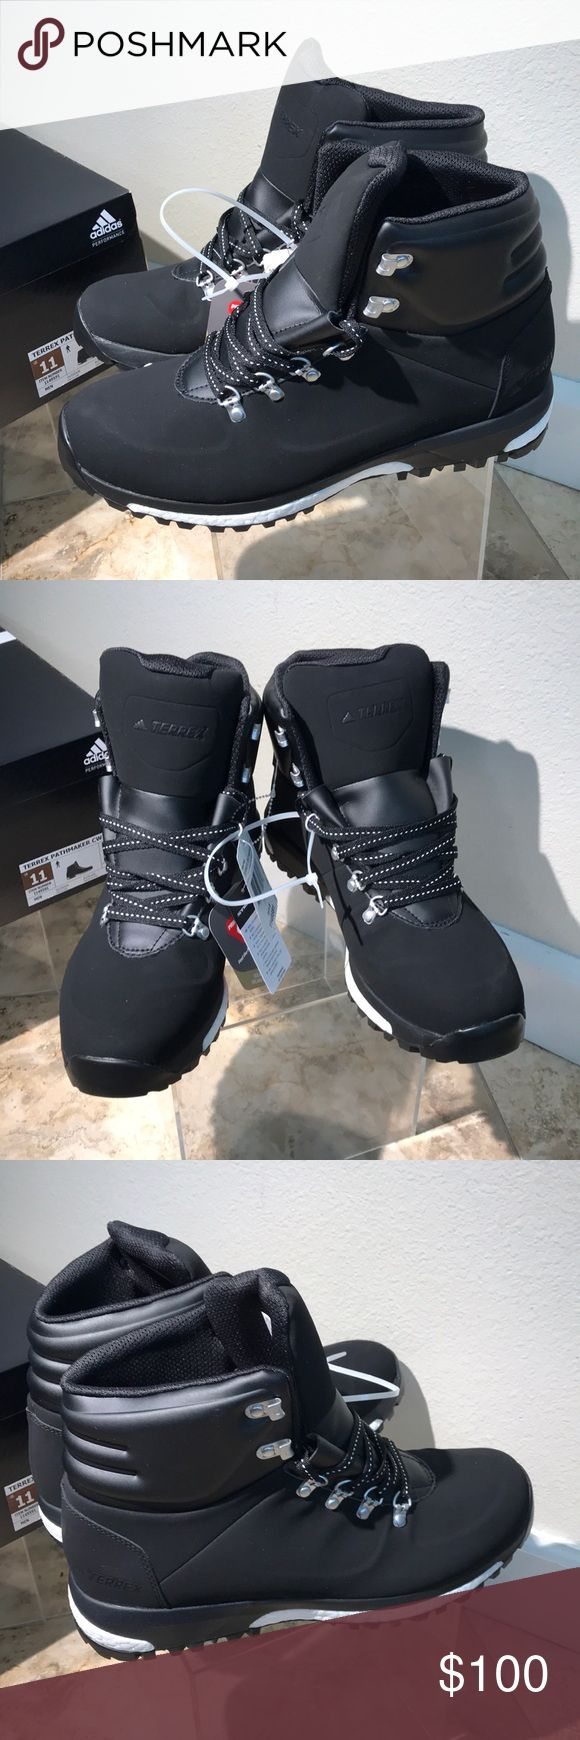 Adidas terrex pathmaker stealth boost energy 11 Adidas men's sneakers / hiker hiking boots size 11 men's black shoes new in box stealth adidas Shoes